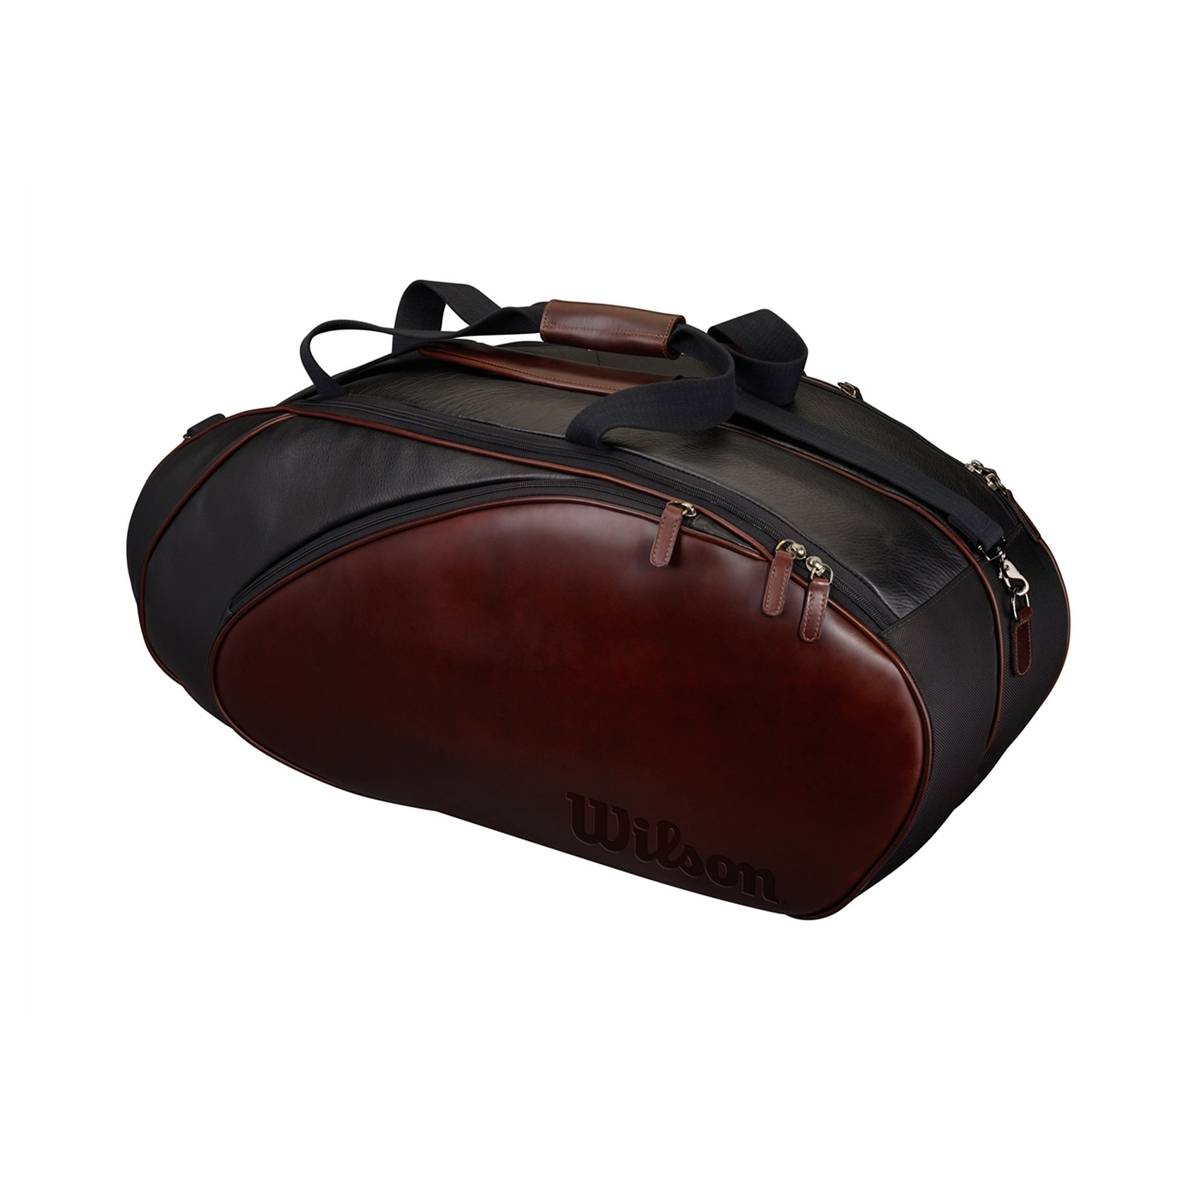 Wilson Leather Bag Limited Edition x6